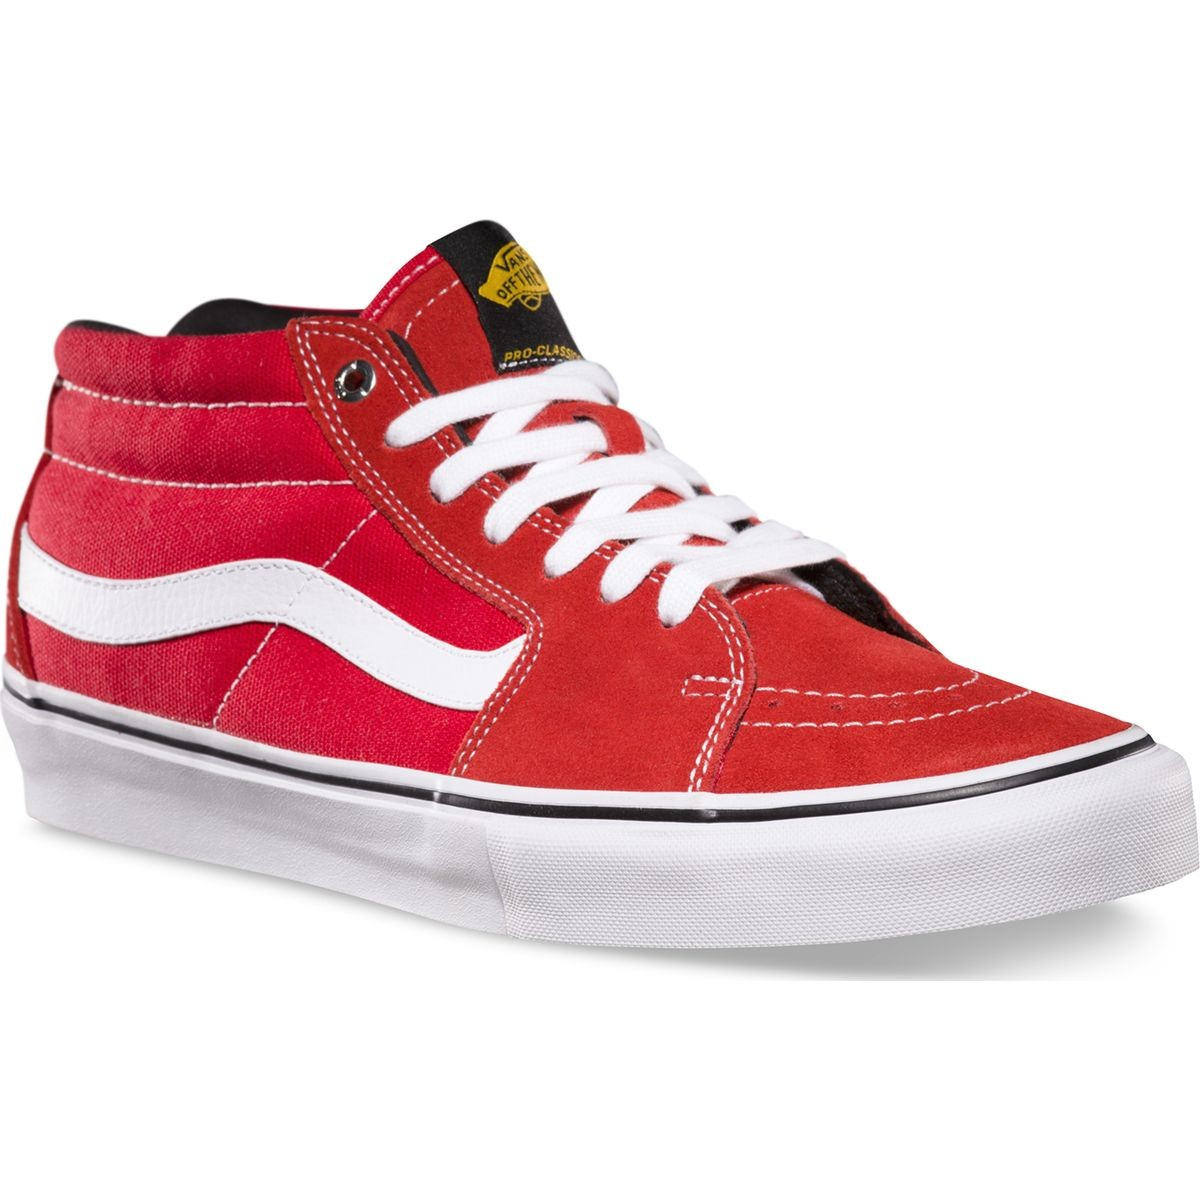 Vans Black Label Sk8-Mid Pro Shoes - Red